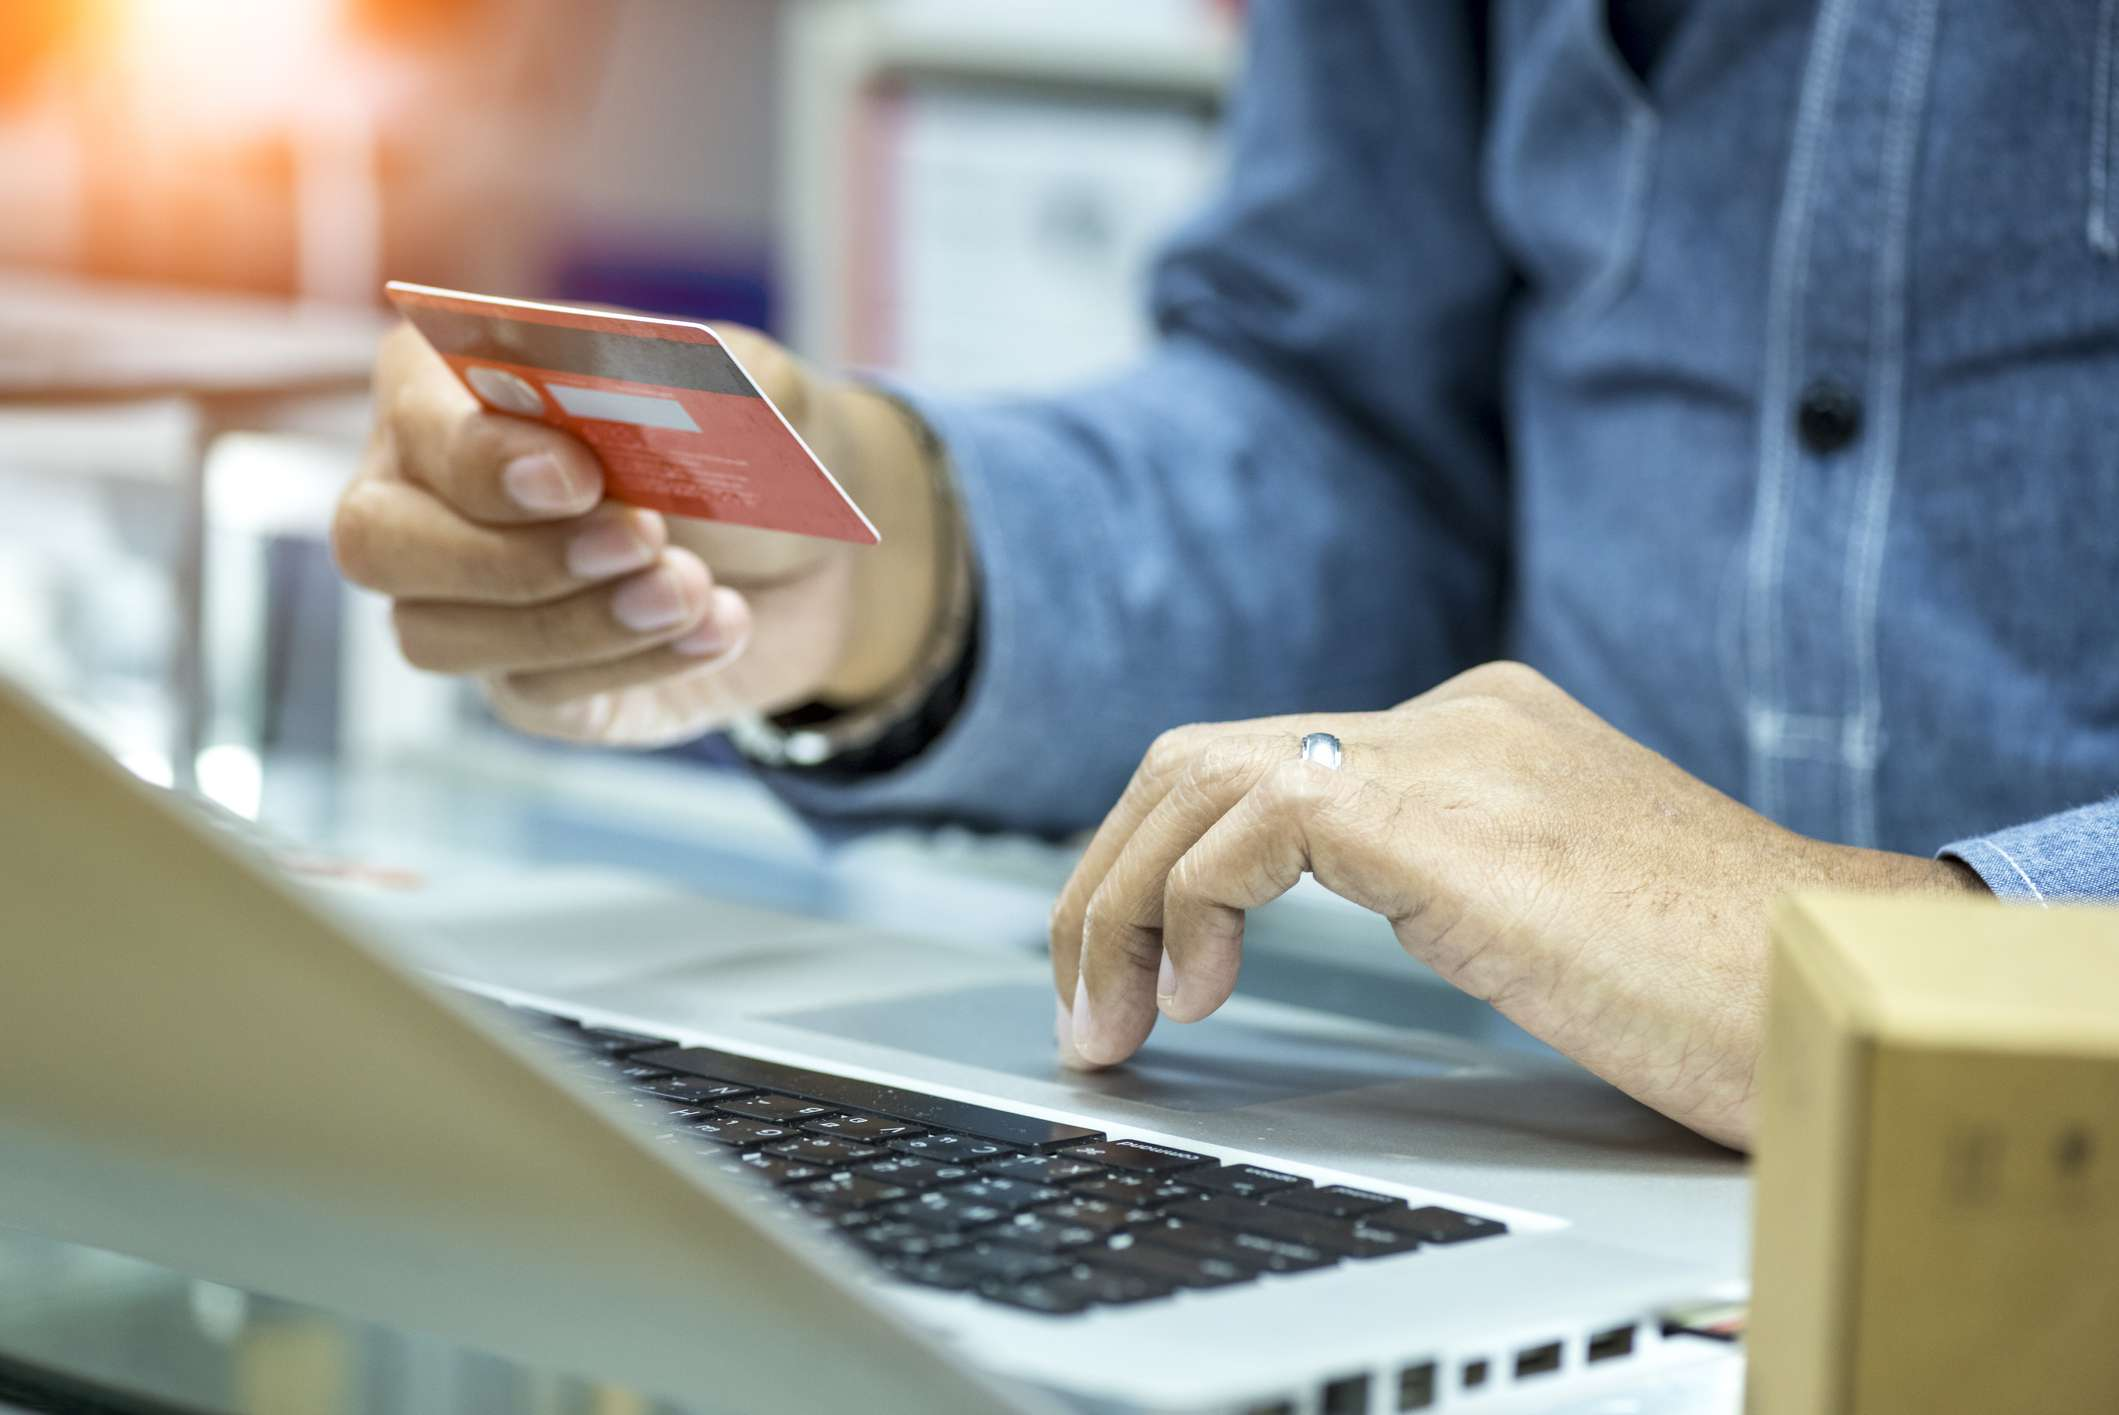 Shopping Online: Convenience, Bargains, and a Few Scams